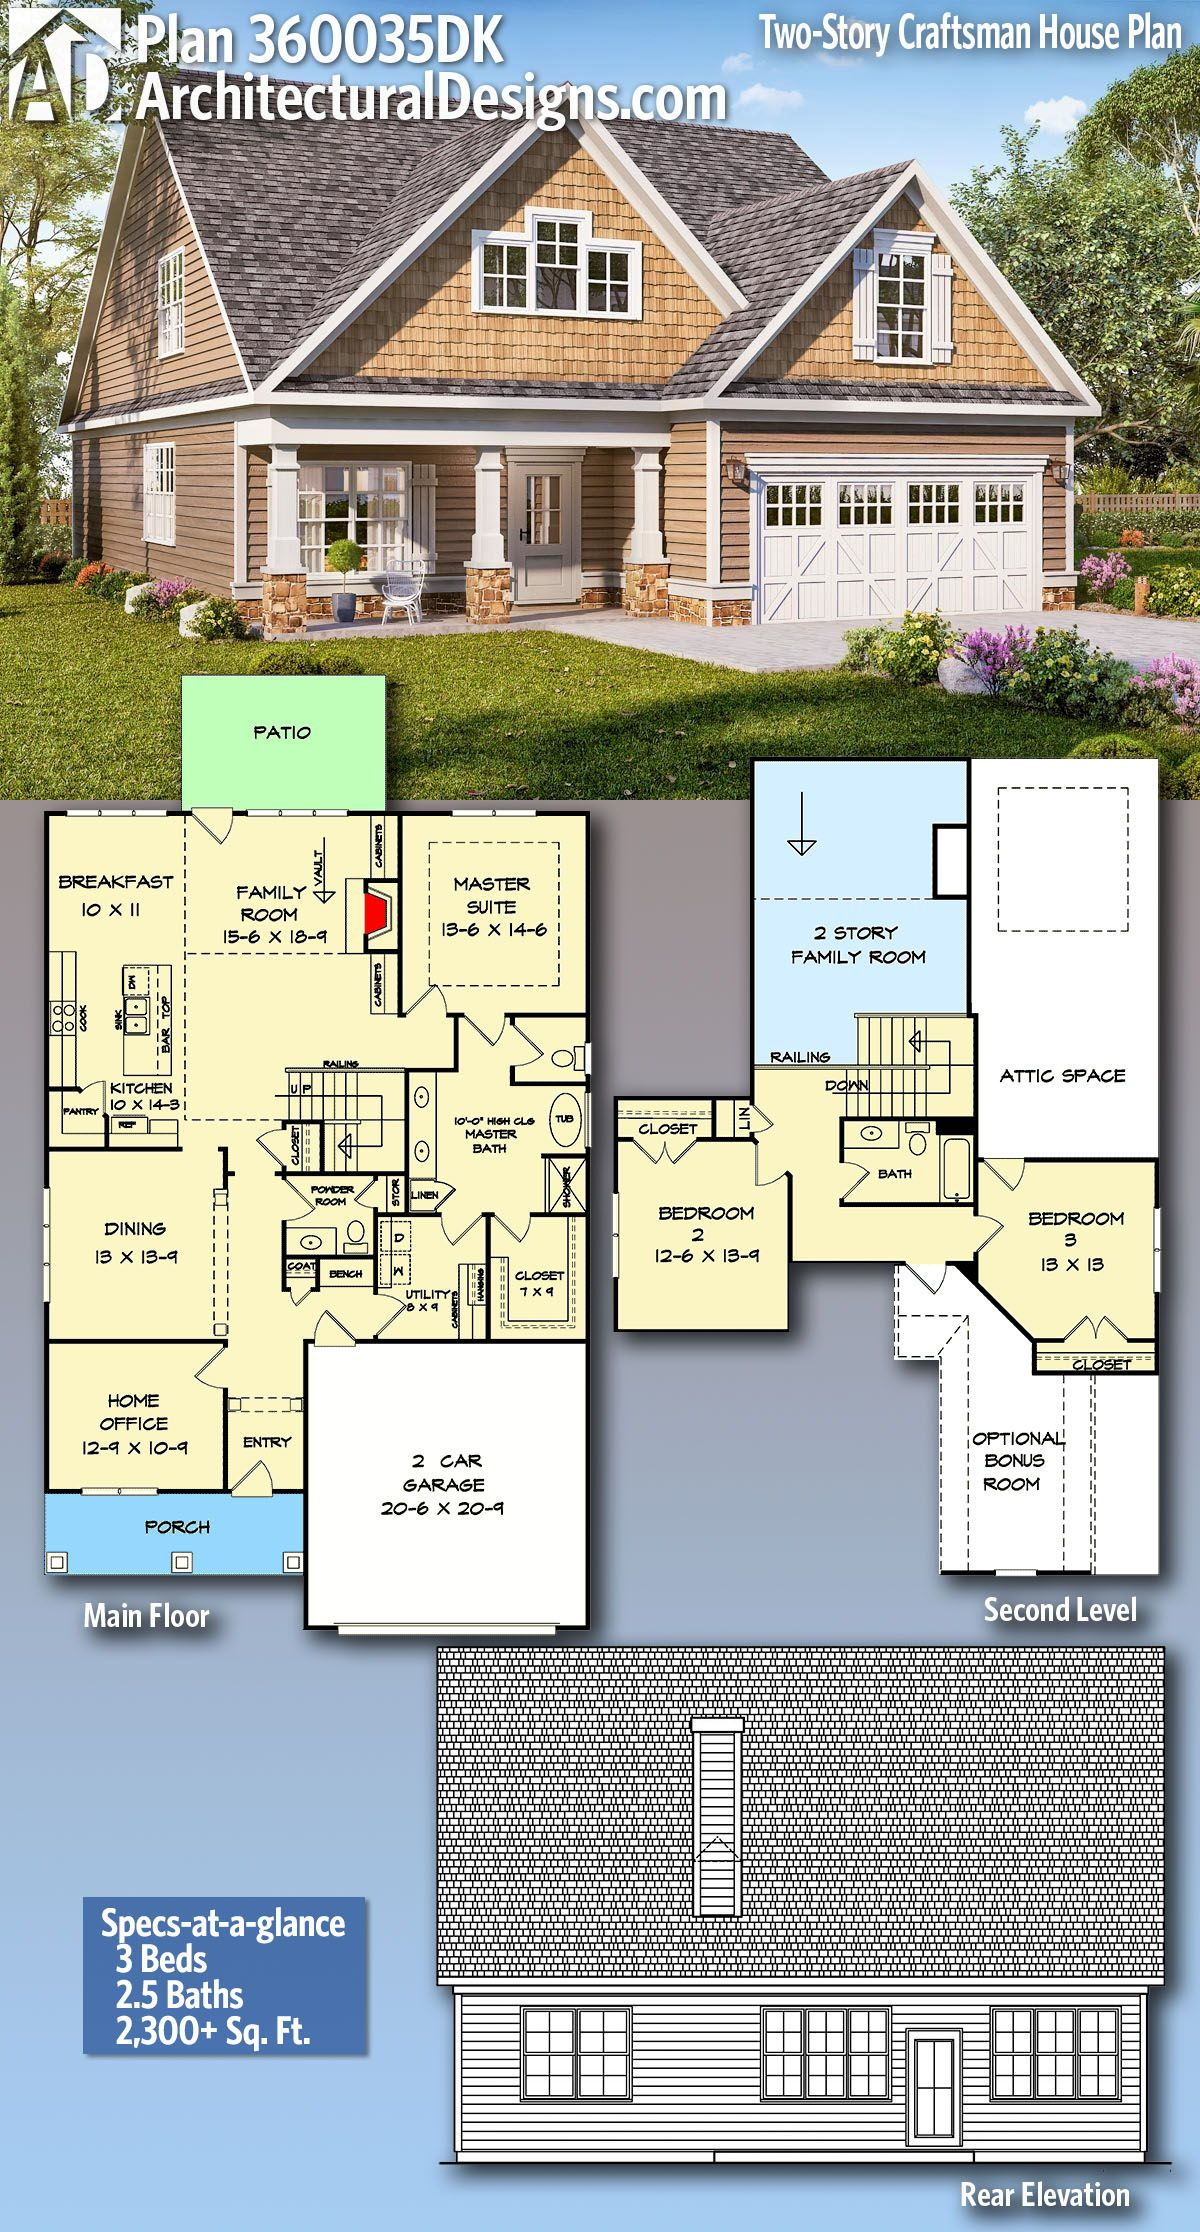 Plan 360035dk Two Story Craftsman House Plan With Office And Main Level Master In 2020 Craftsman House Craftsman House Plans Craftsman House Plan